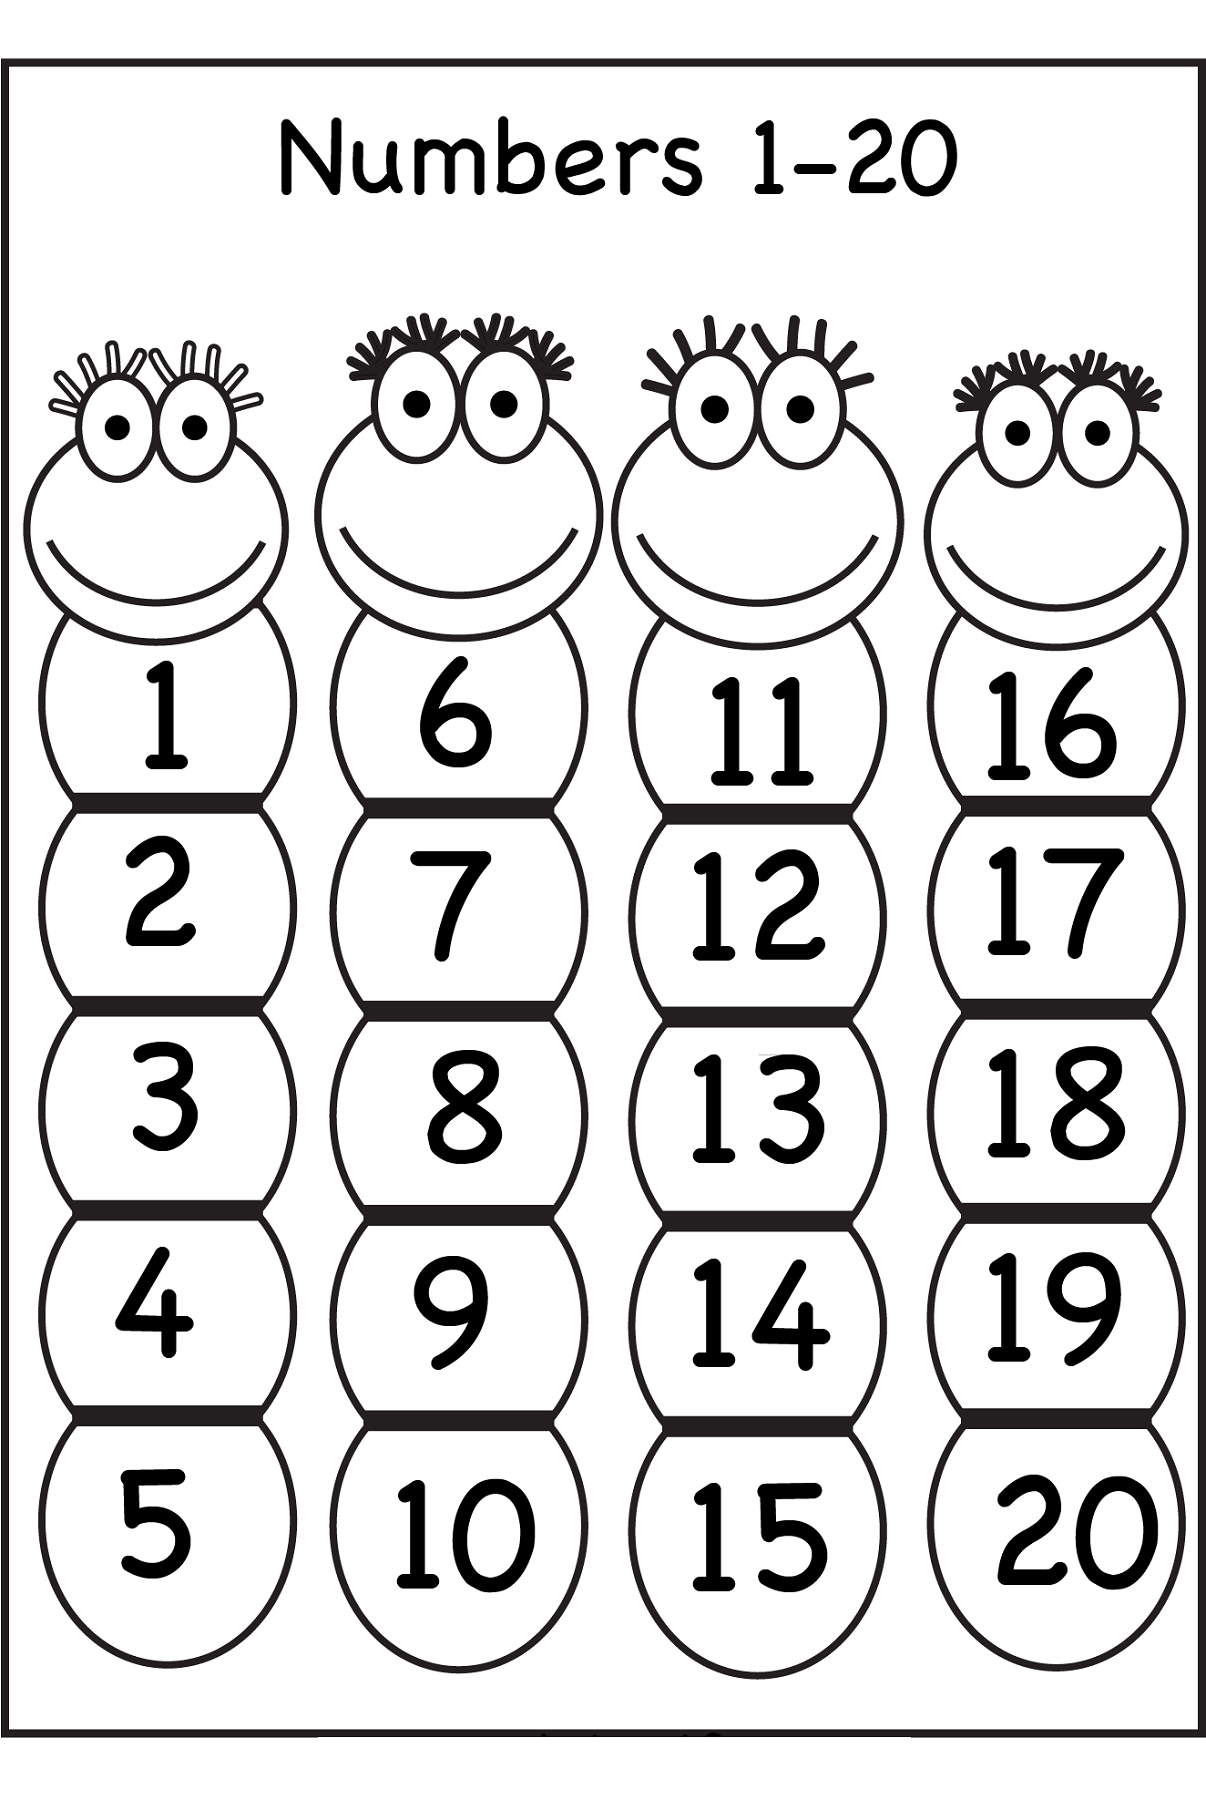 120 Number Chart for Preschool Preschool number